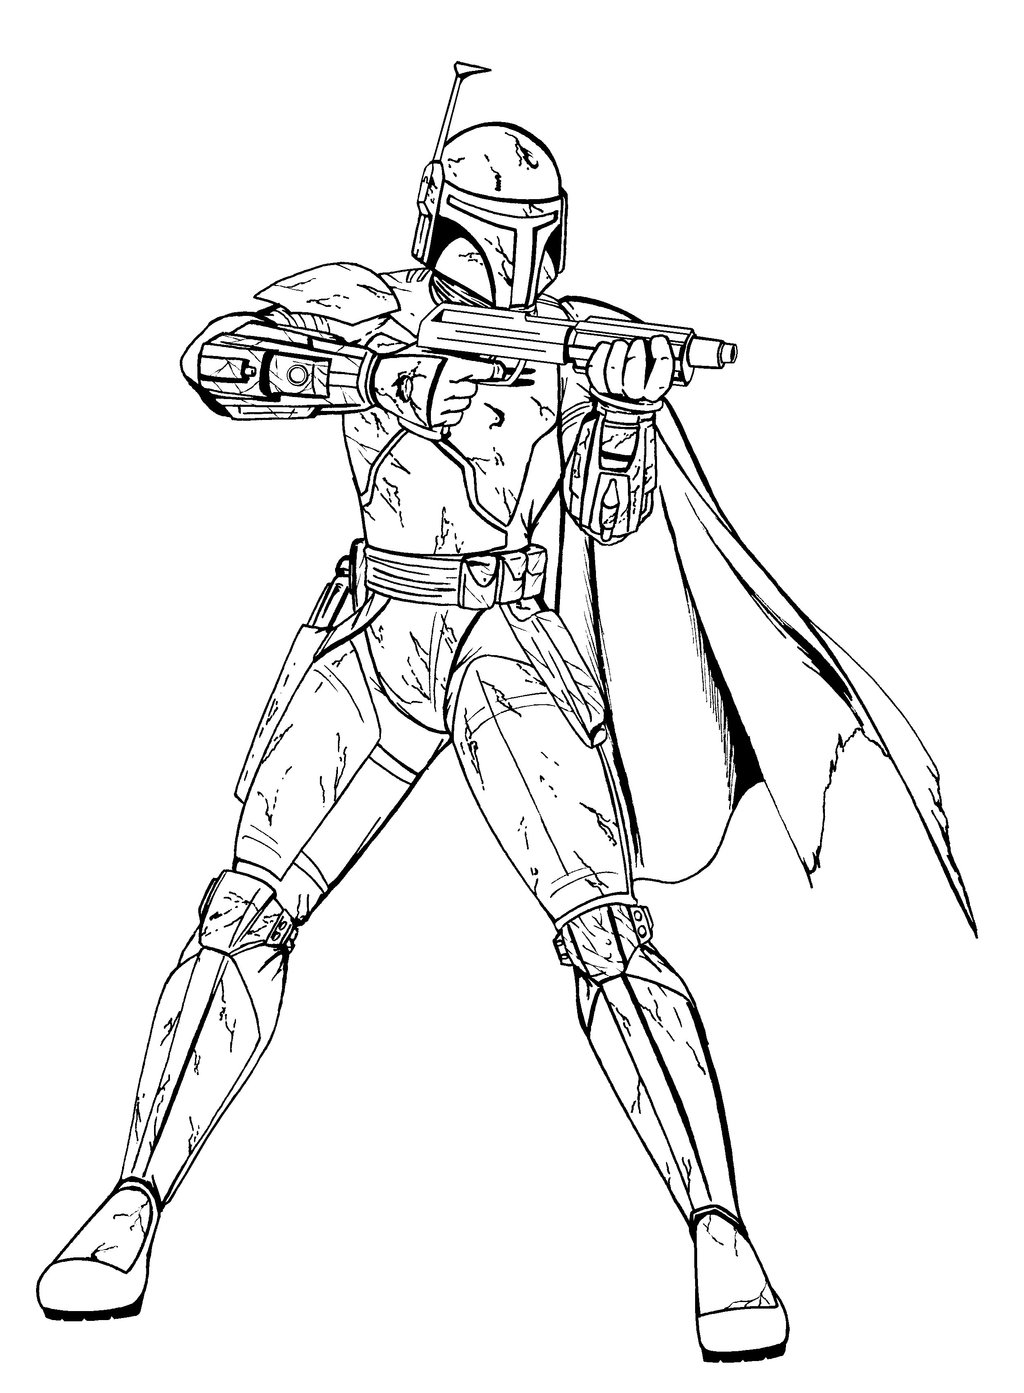 star wars pictures to print star wars stormtrooper coloring pages printable coloring to pictures star wars print